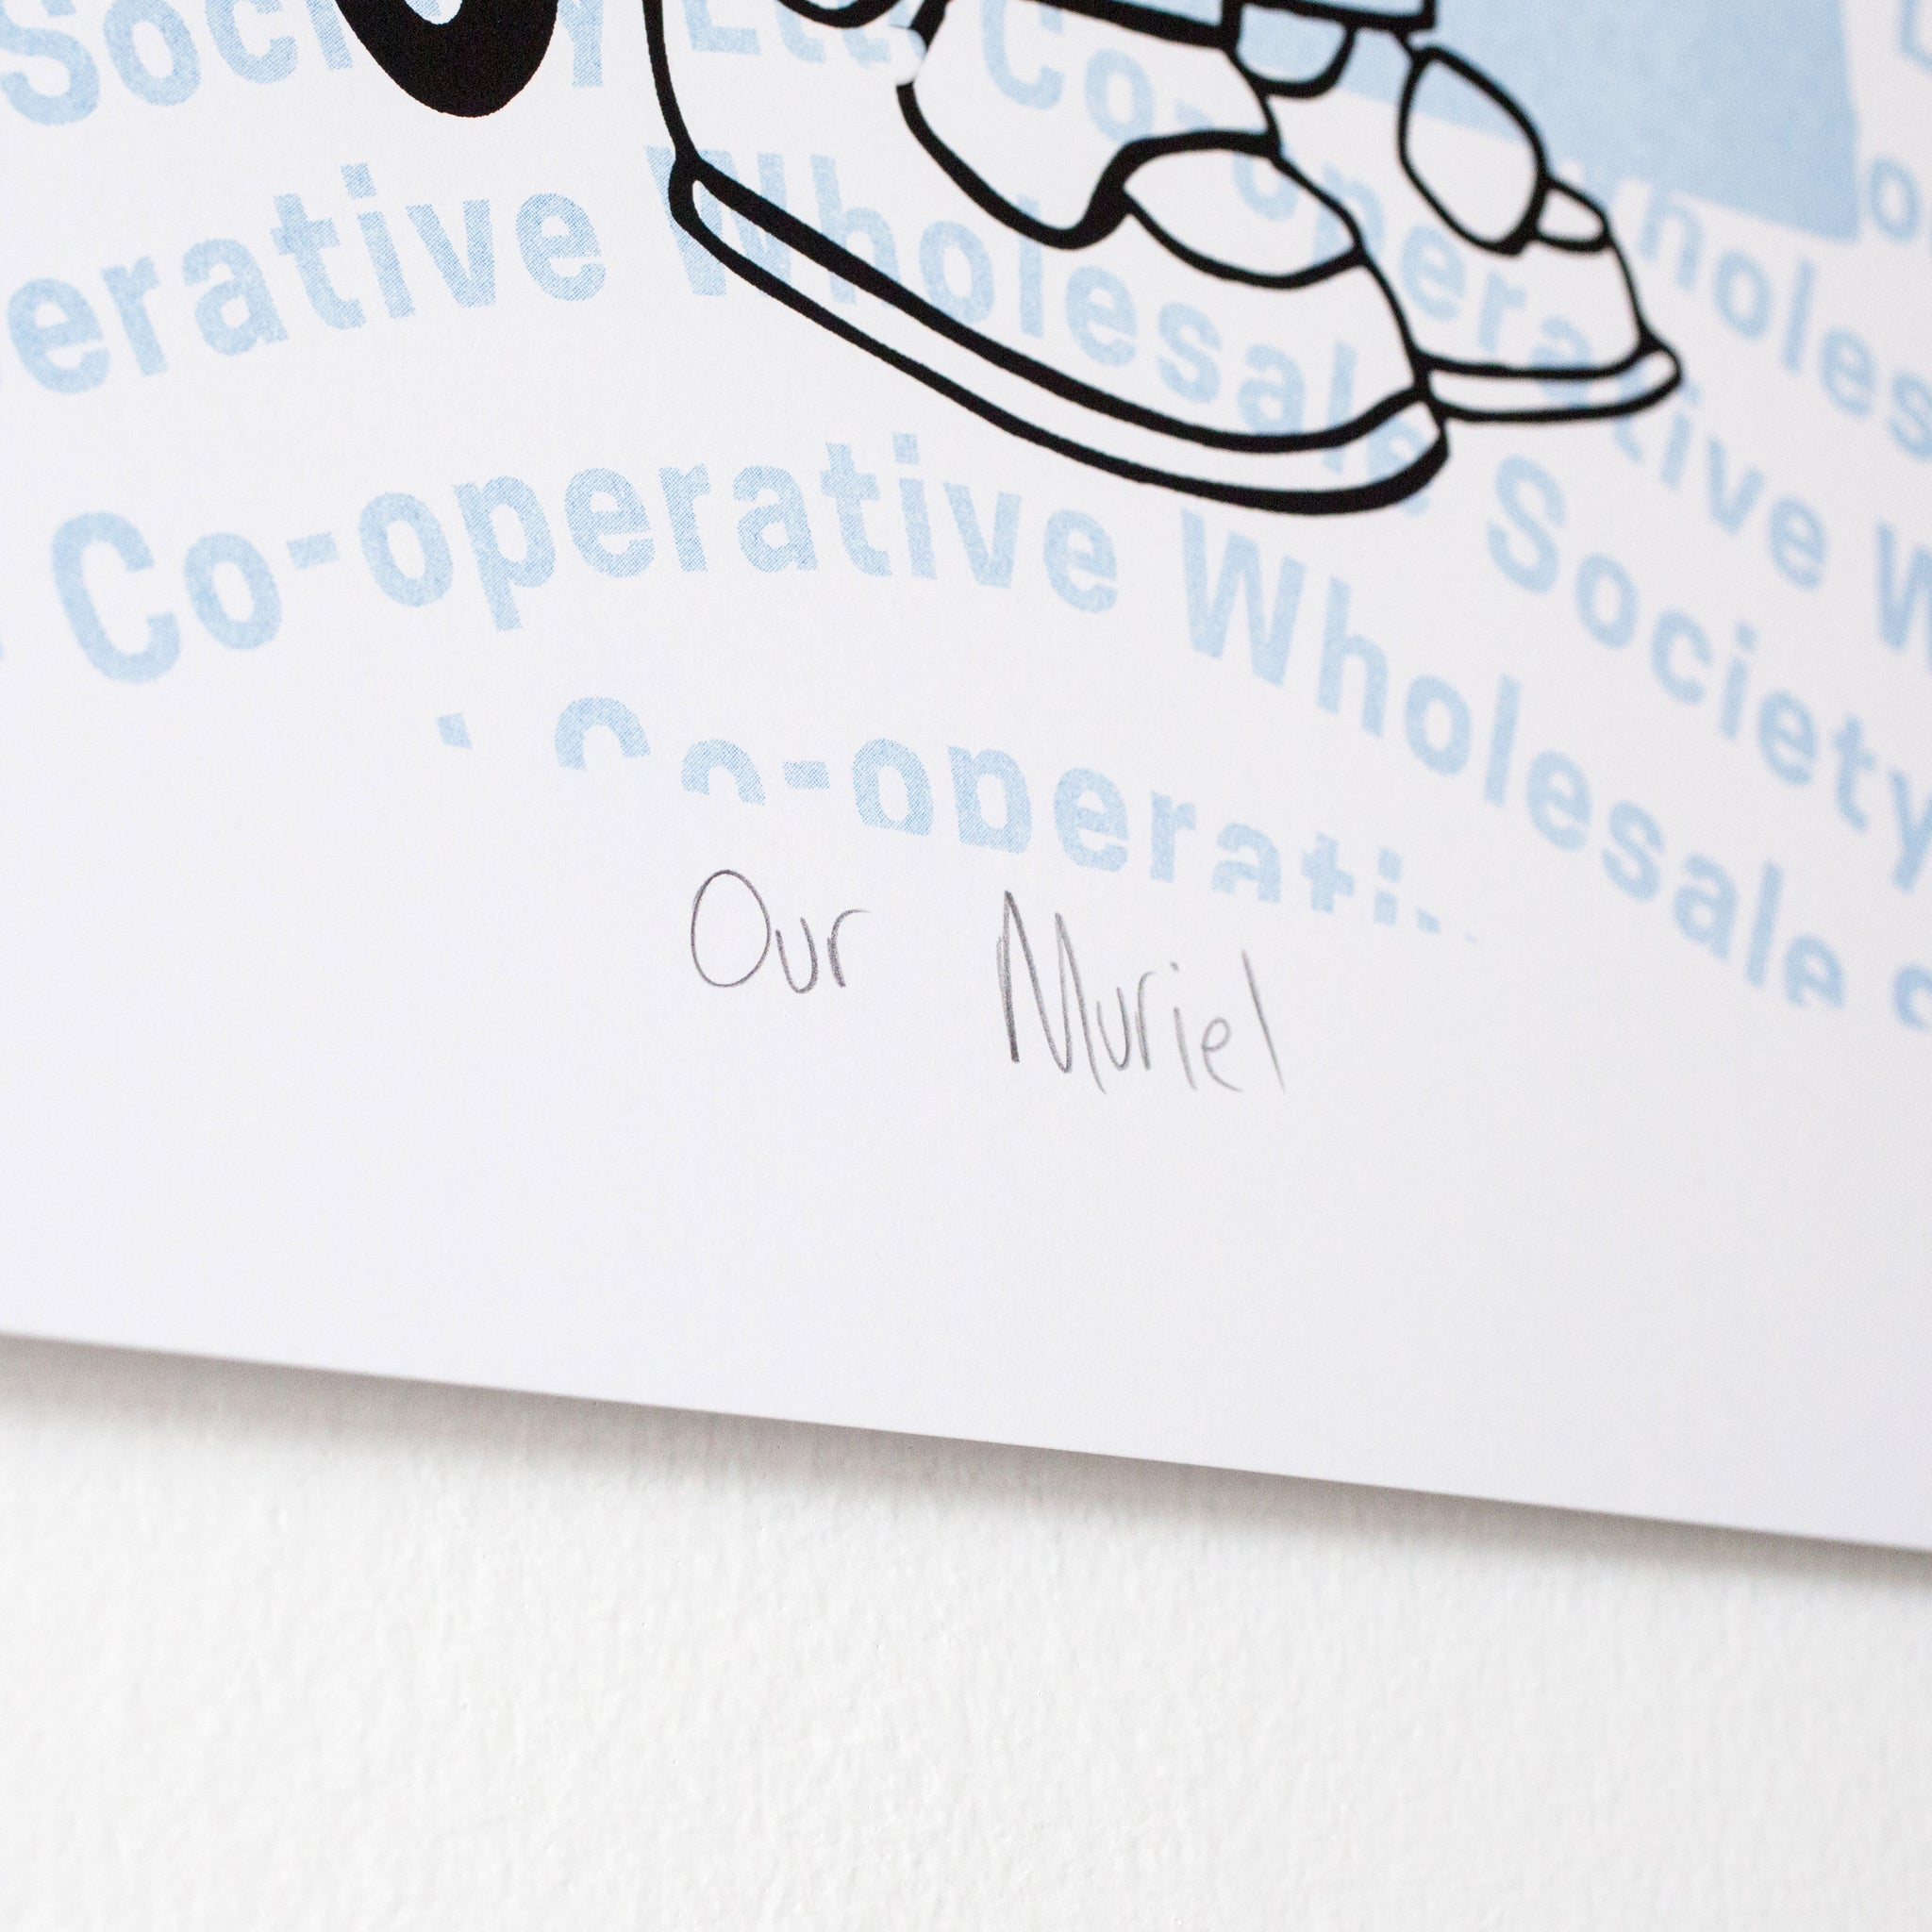 Our Muriel - Limited Edition Print